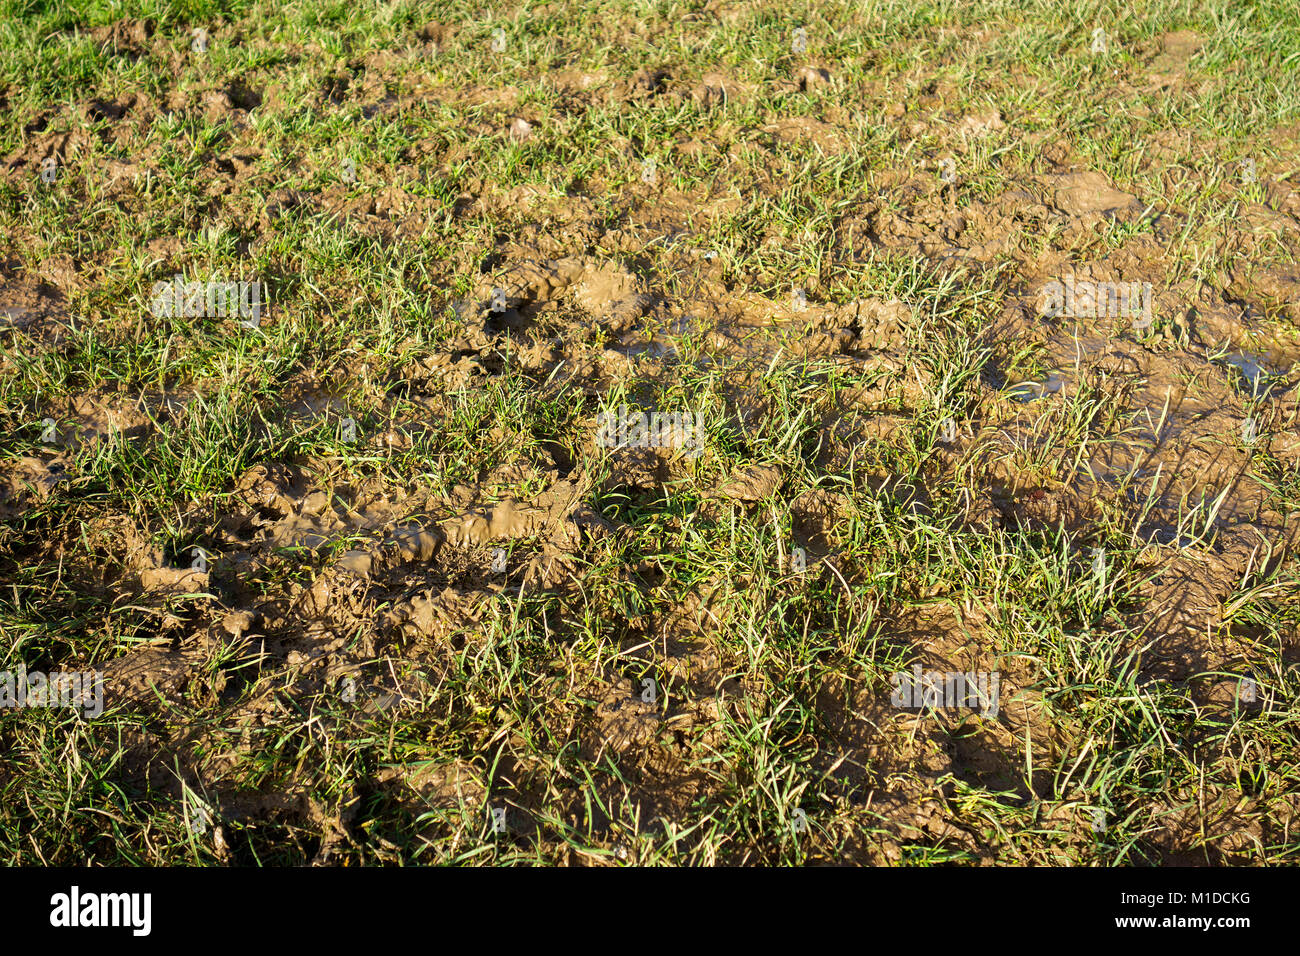 waterlogged flooded muddy sports pitch field garden lawn - Stock Image